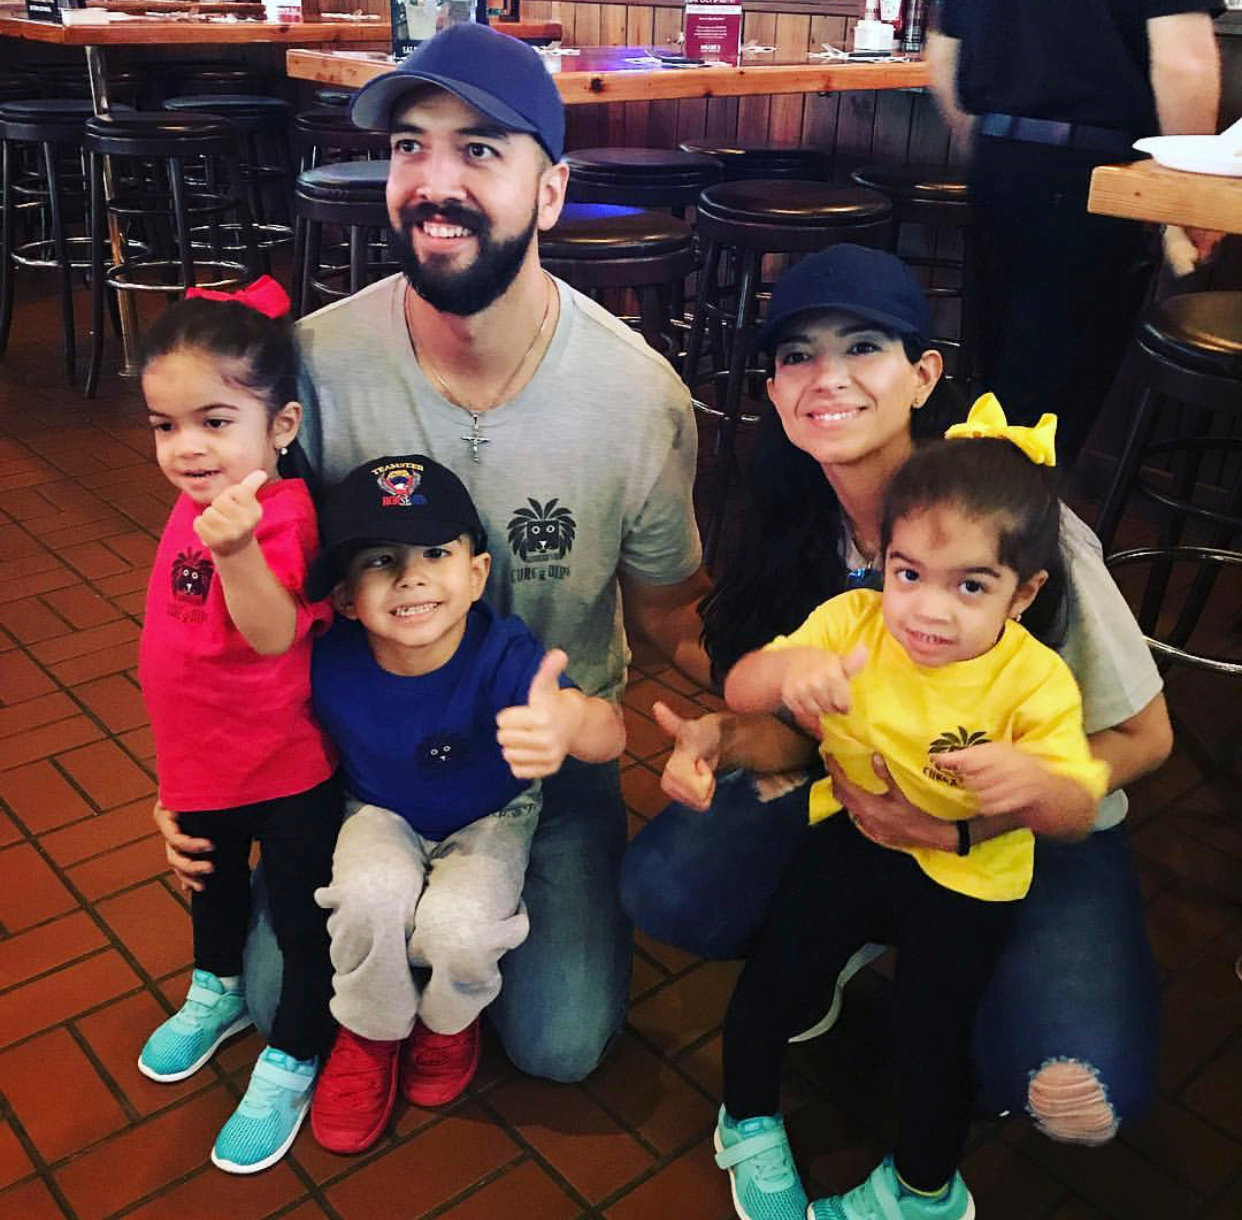 Luis has undergone more than 30 radiation treatments. Clockwise from bottom right, sister Sophia, 3; Luis III; sister Ava, 3; father, Luis Jr.; and mother, Karla.